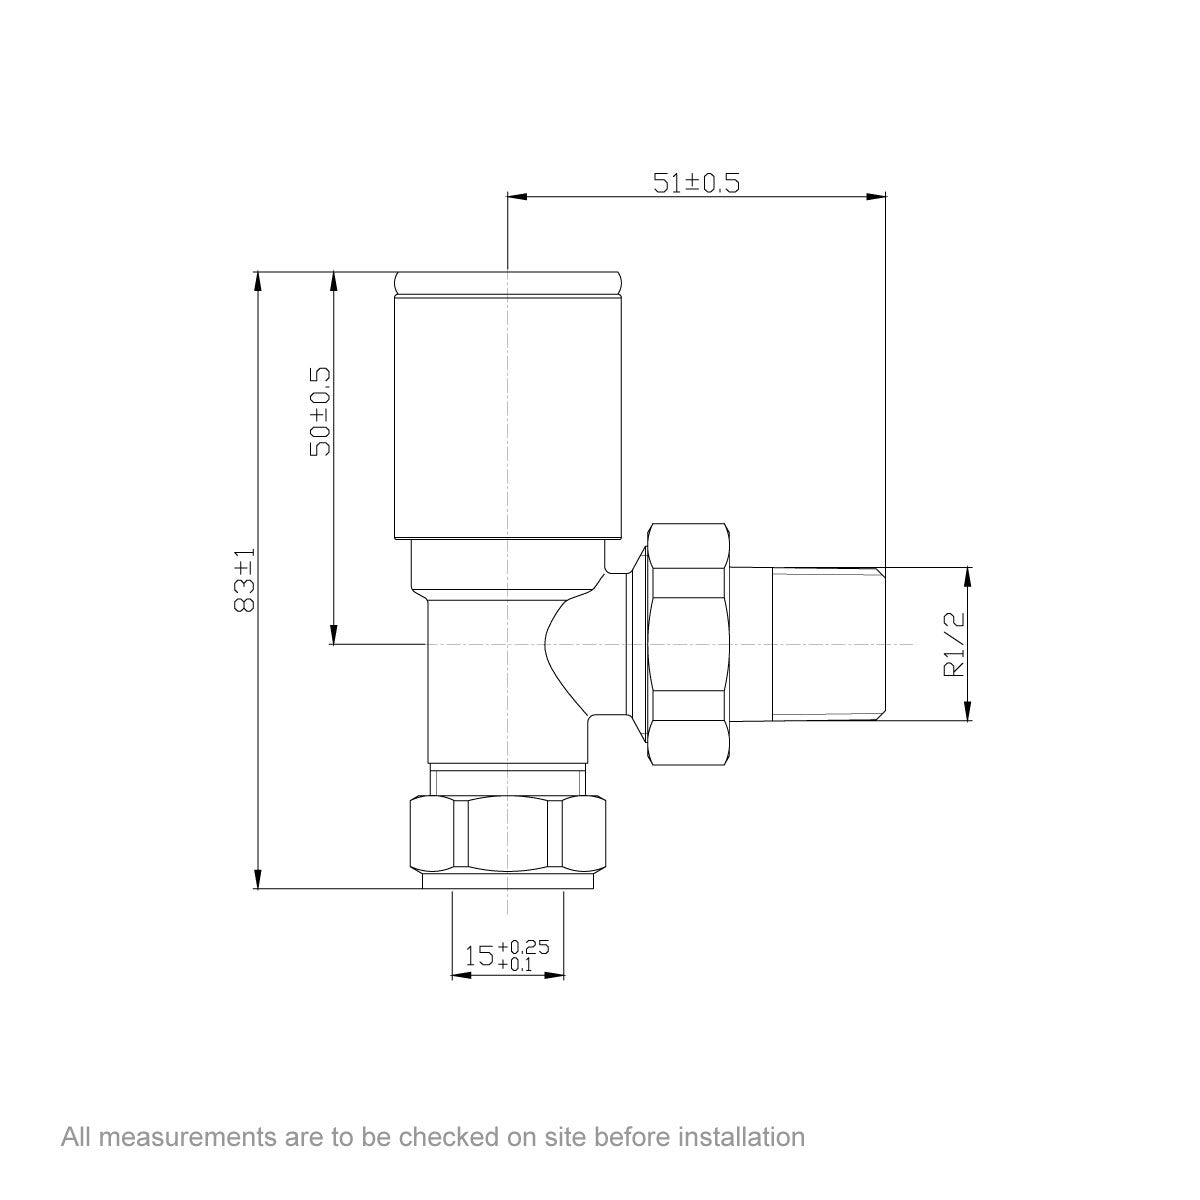 Dimensions for Orchard Mako angled radiator valves